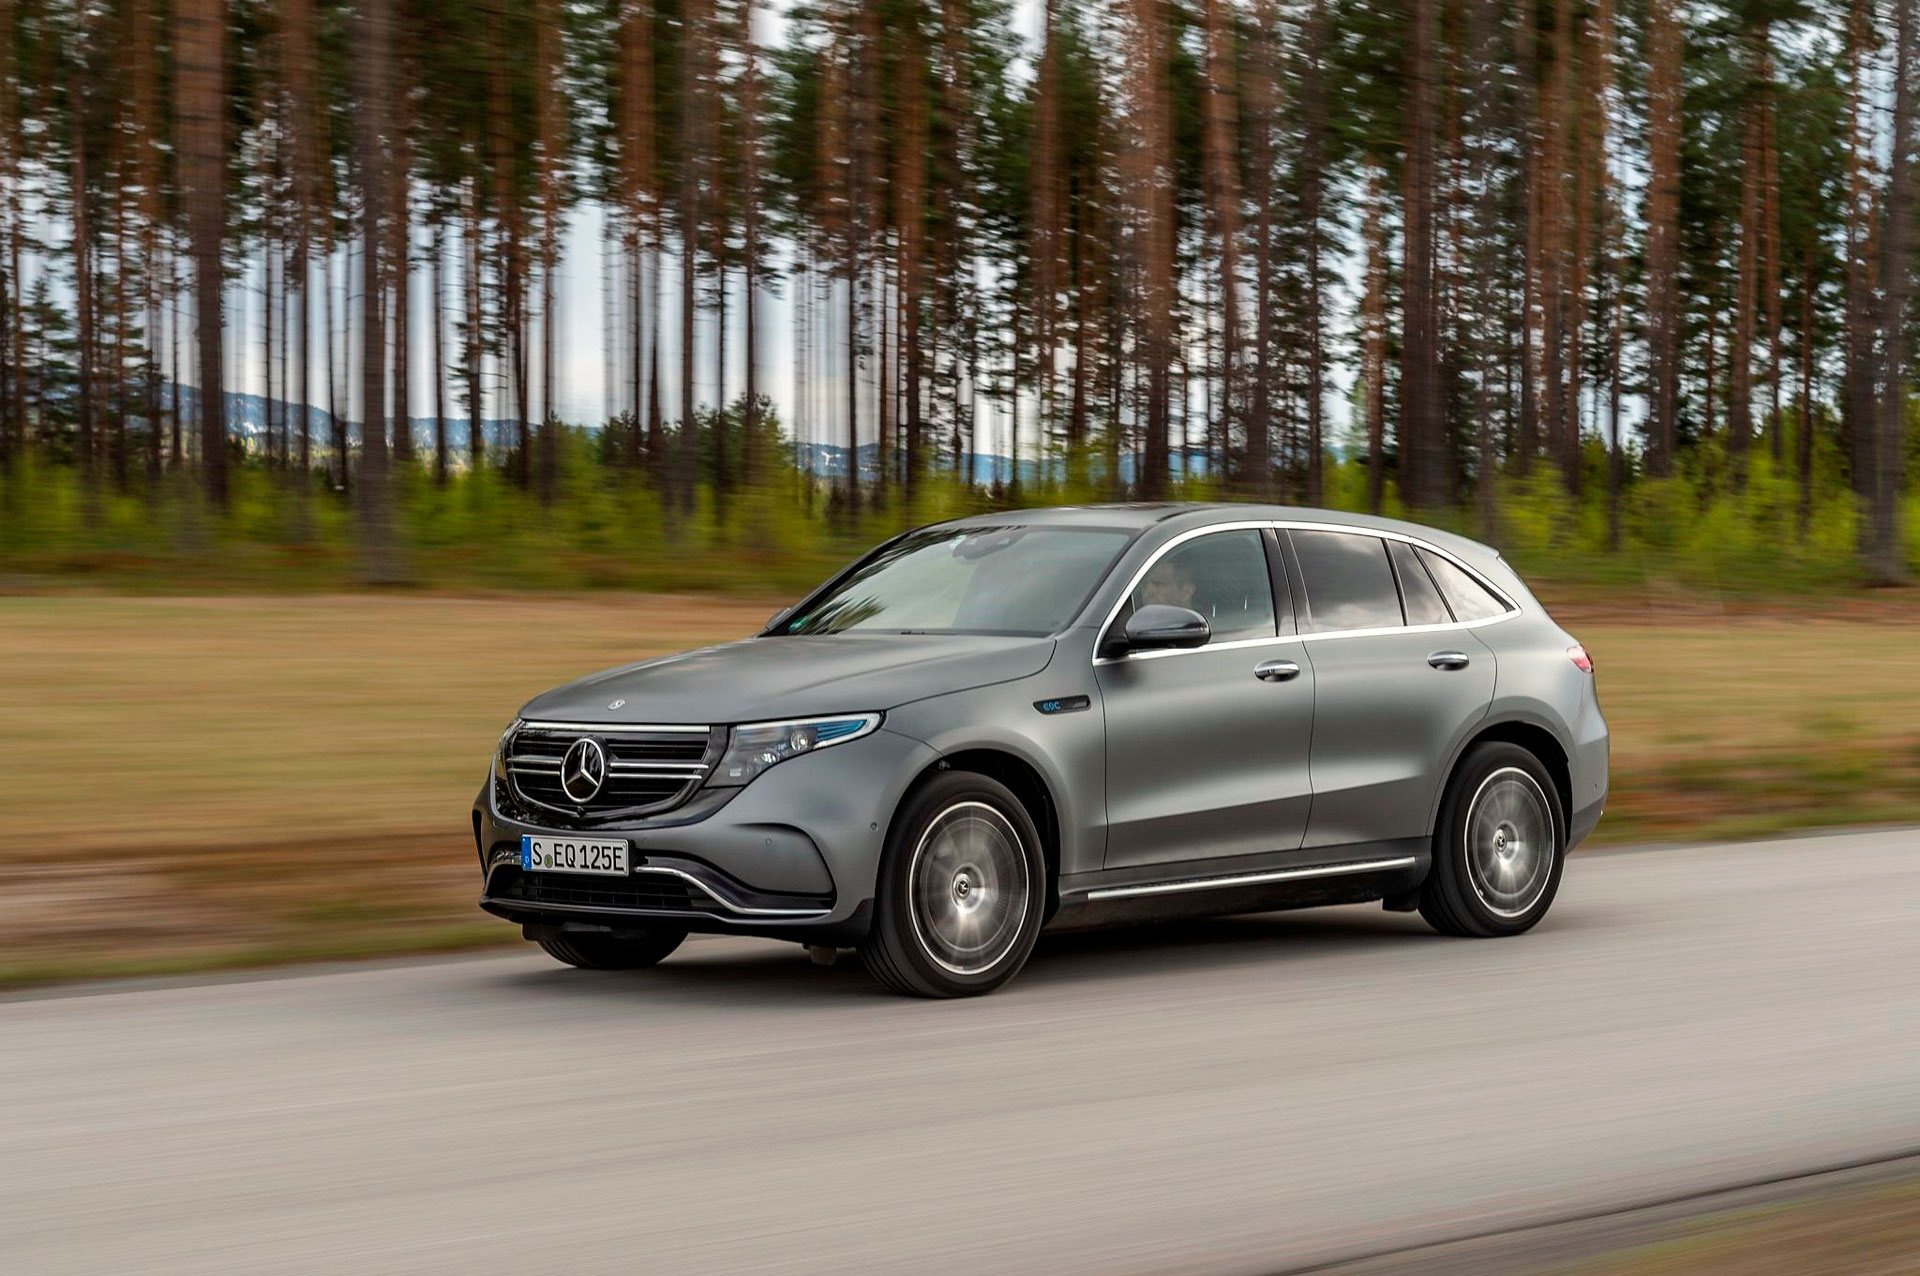 Тест-драйв Mercedes-Benz EQC 400 4MATIC в Норвегии